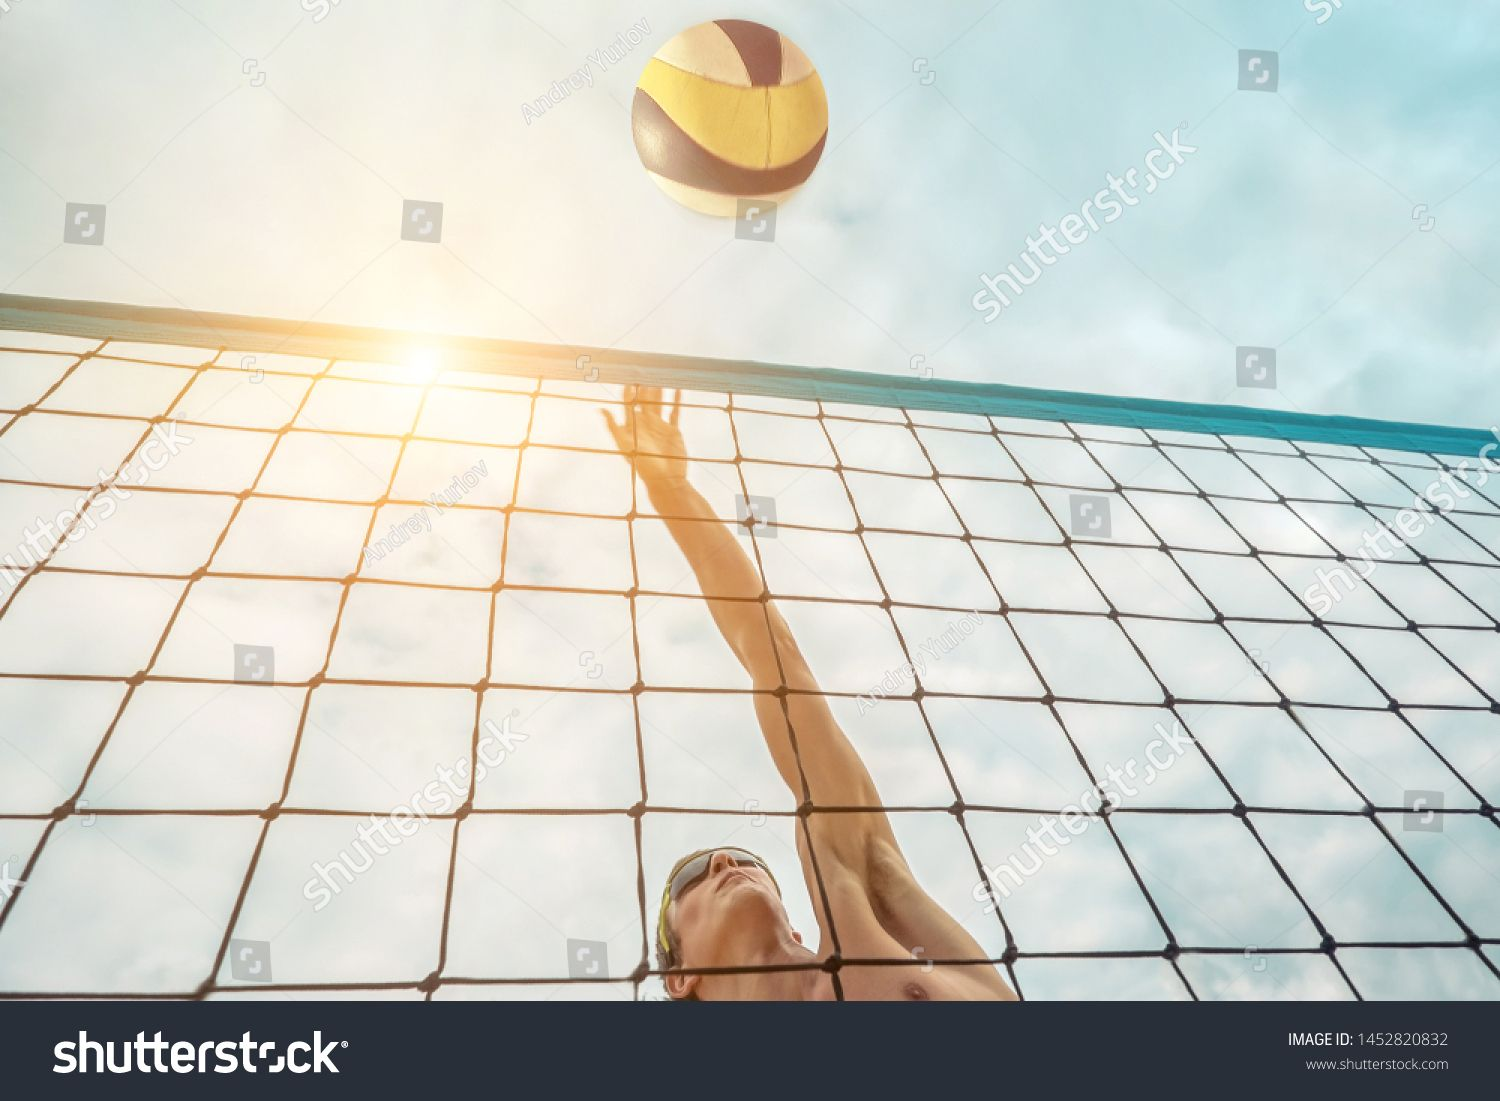 Beach Volleyball Player In Sunglasses In Action With Ball Under Sunlight Popular Dynamic Outdoor Sport For In 2020 Volleyball Players Beach Volleyball Outdoor Sports